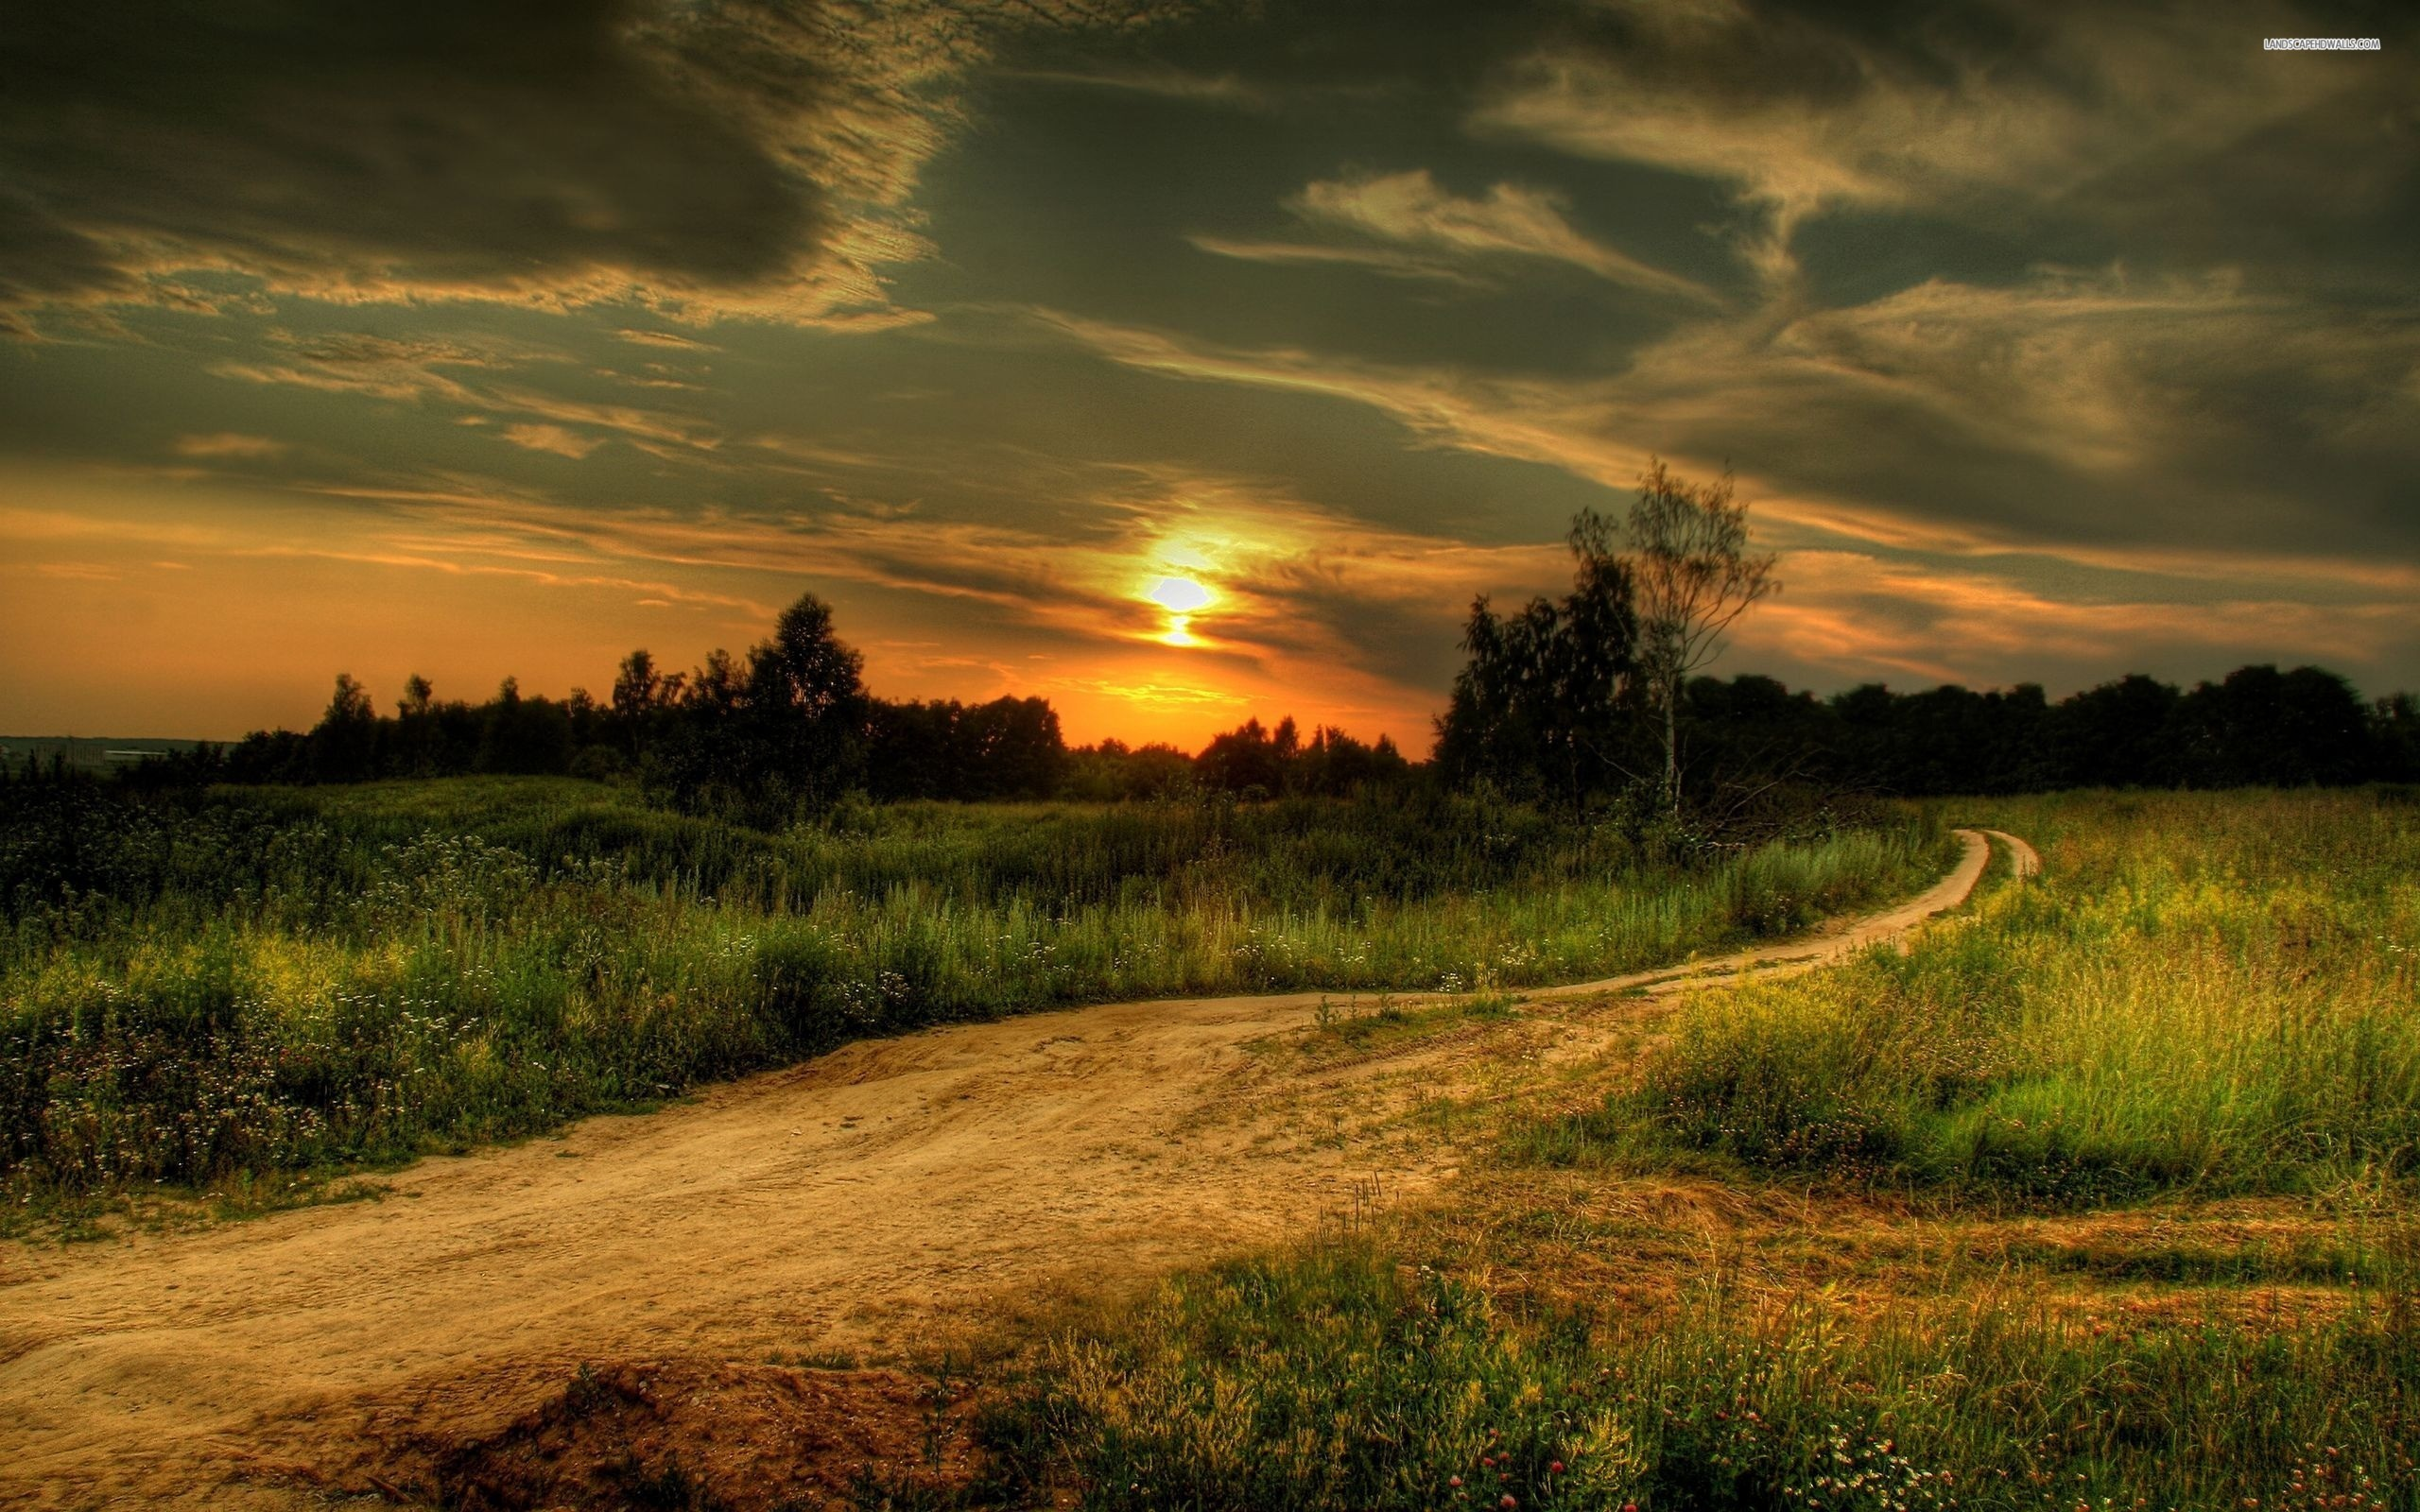 Country Road Wallpaper 6554 Hd Wallpapers